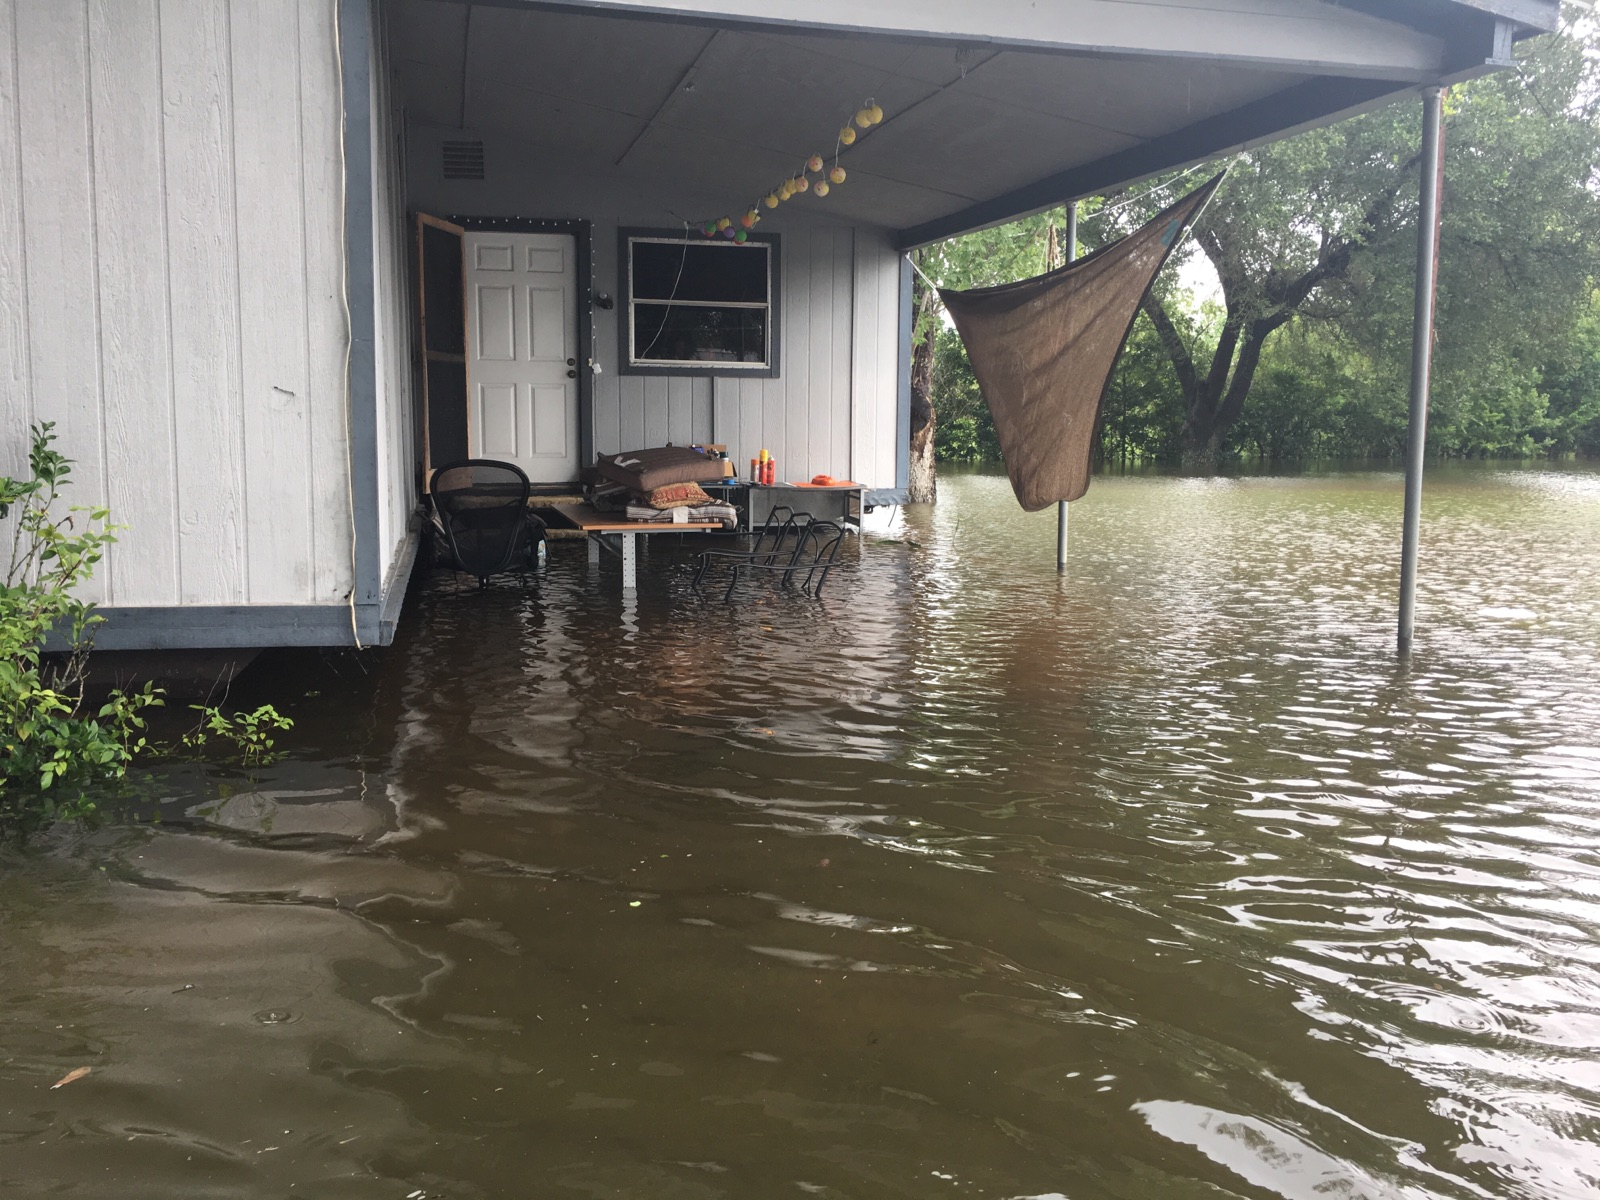 Photo of my trailer house the day after Hurricane Harvey. Water is almost to the floor of the trailer, which is 3-4 feet above the ground